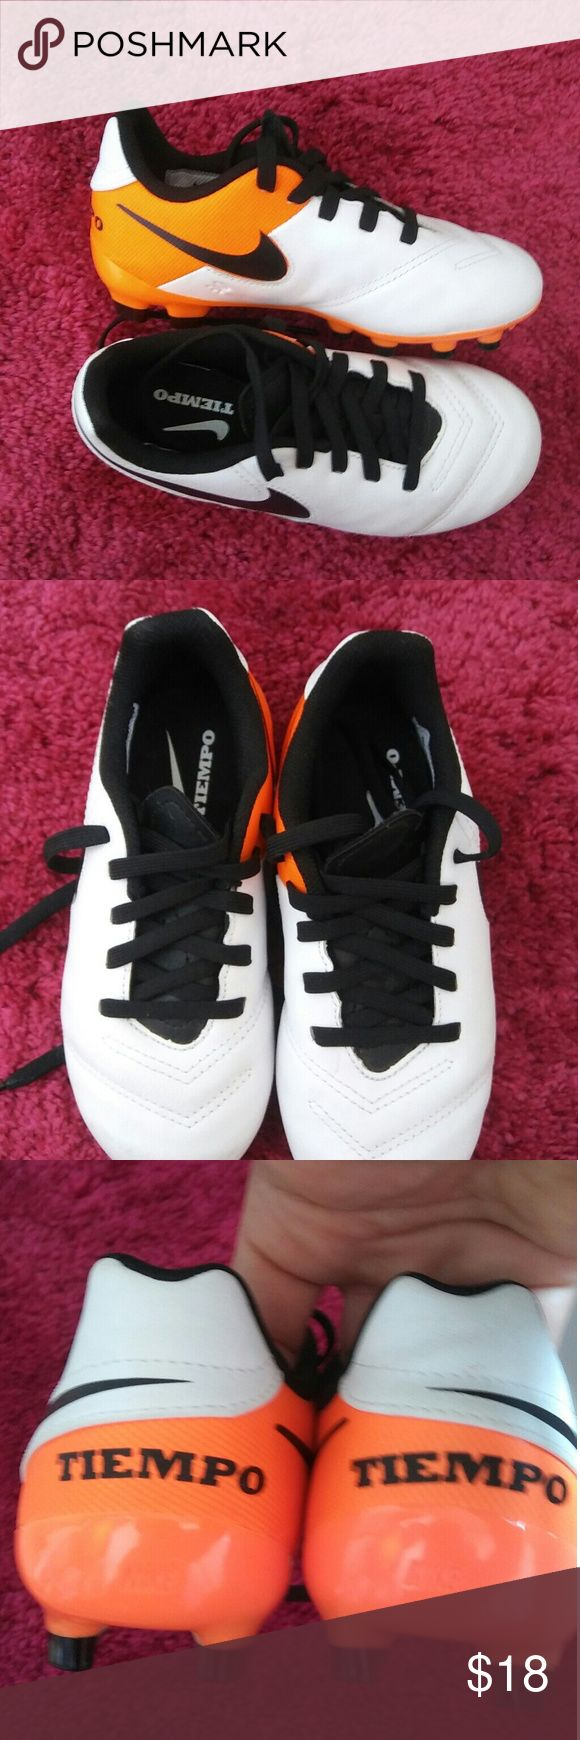 NWON Unisex Preschool Outdoor soccer cleats Nike Tiempo  Colors are white orange and Black Never worn. Purchased for my daughter, only to be told she needs indoor shoes instead Nike Shoes